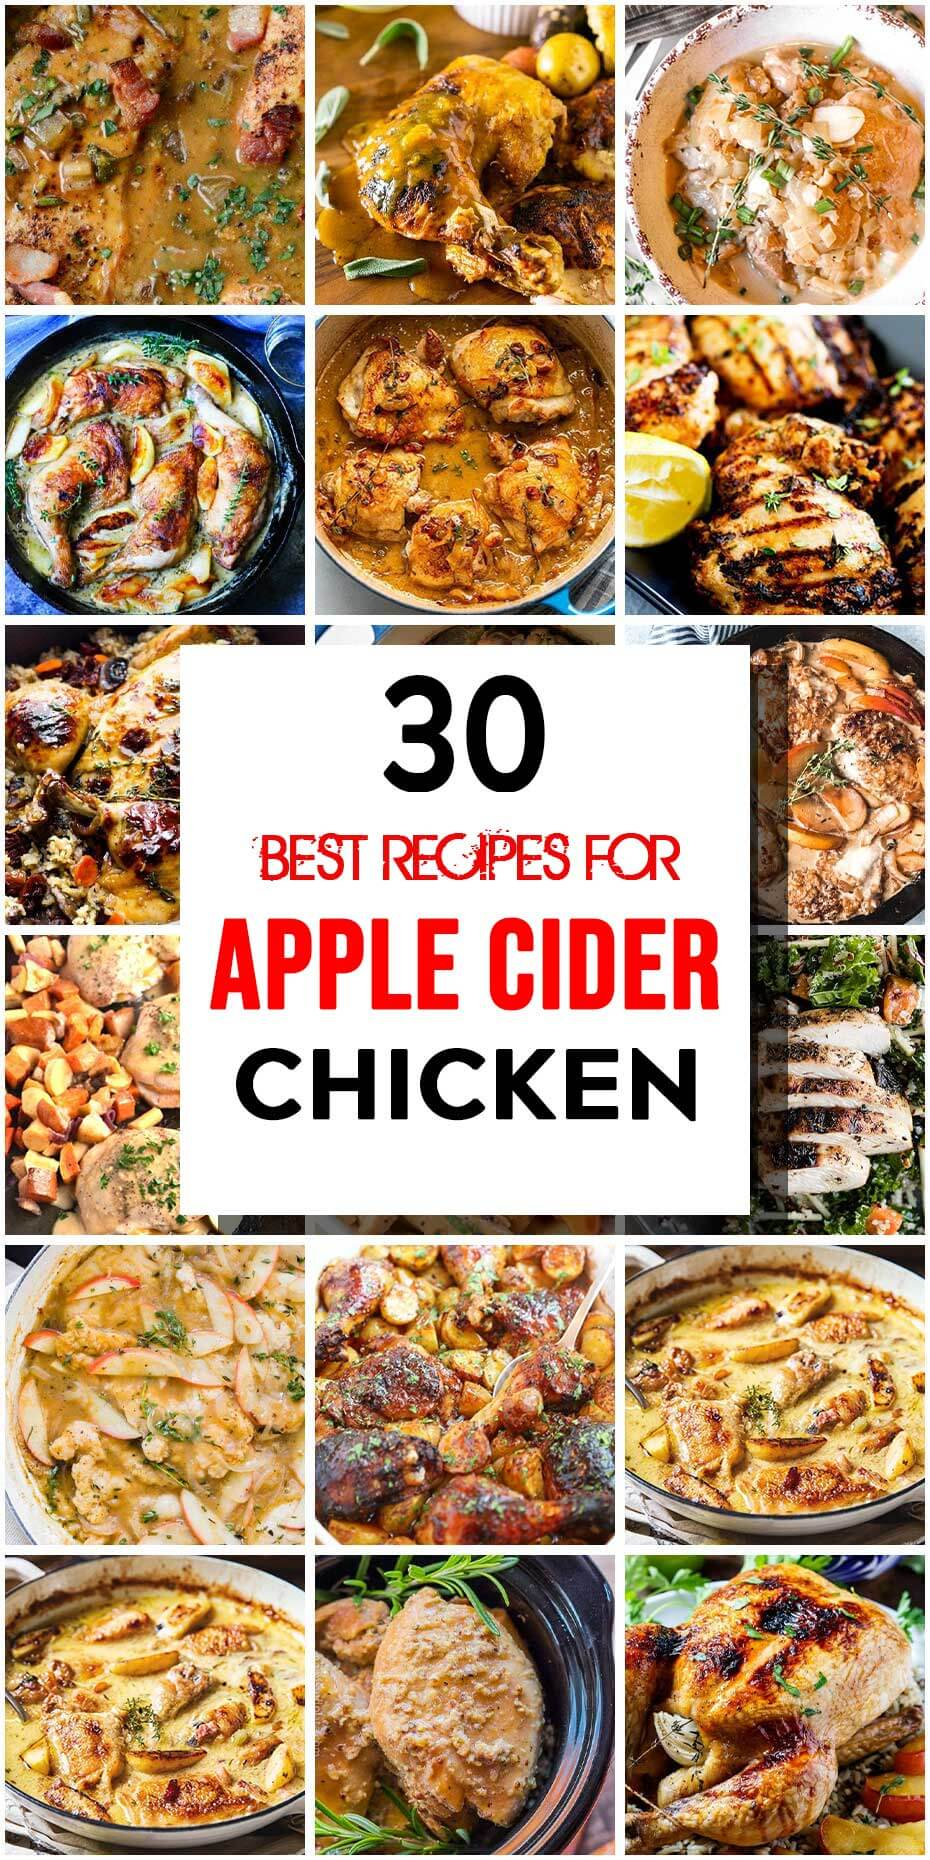 30 Apple Cider Chicken Dishes That Are Crazy Good